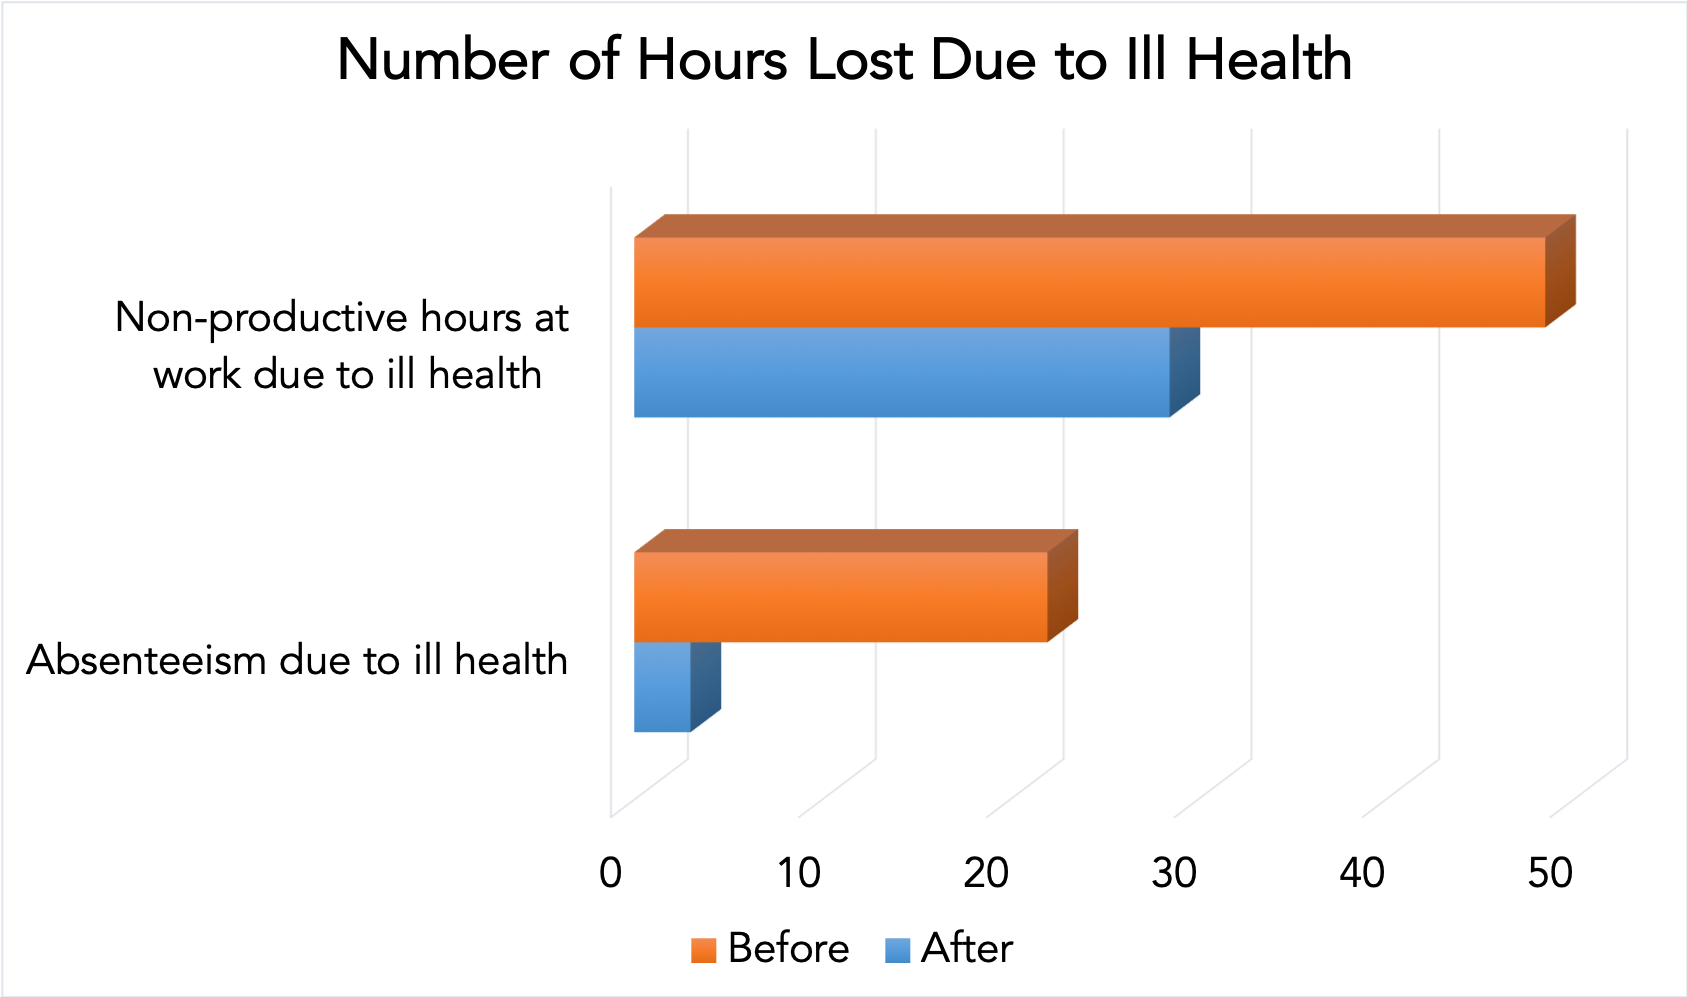 Number of hours lost due to ill health before and after the programme